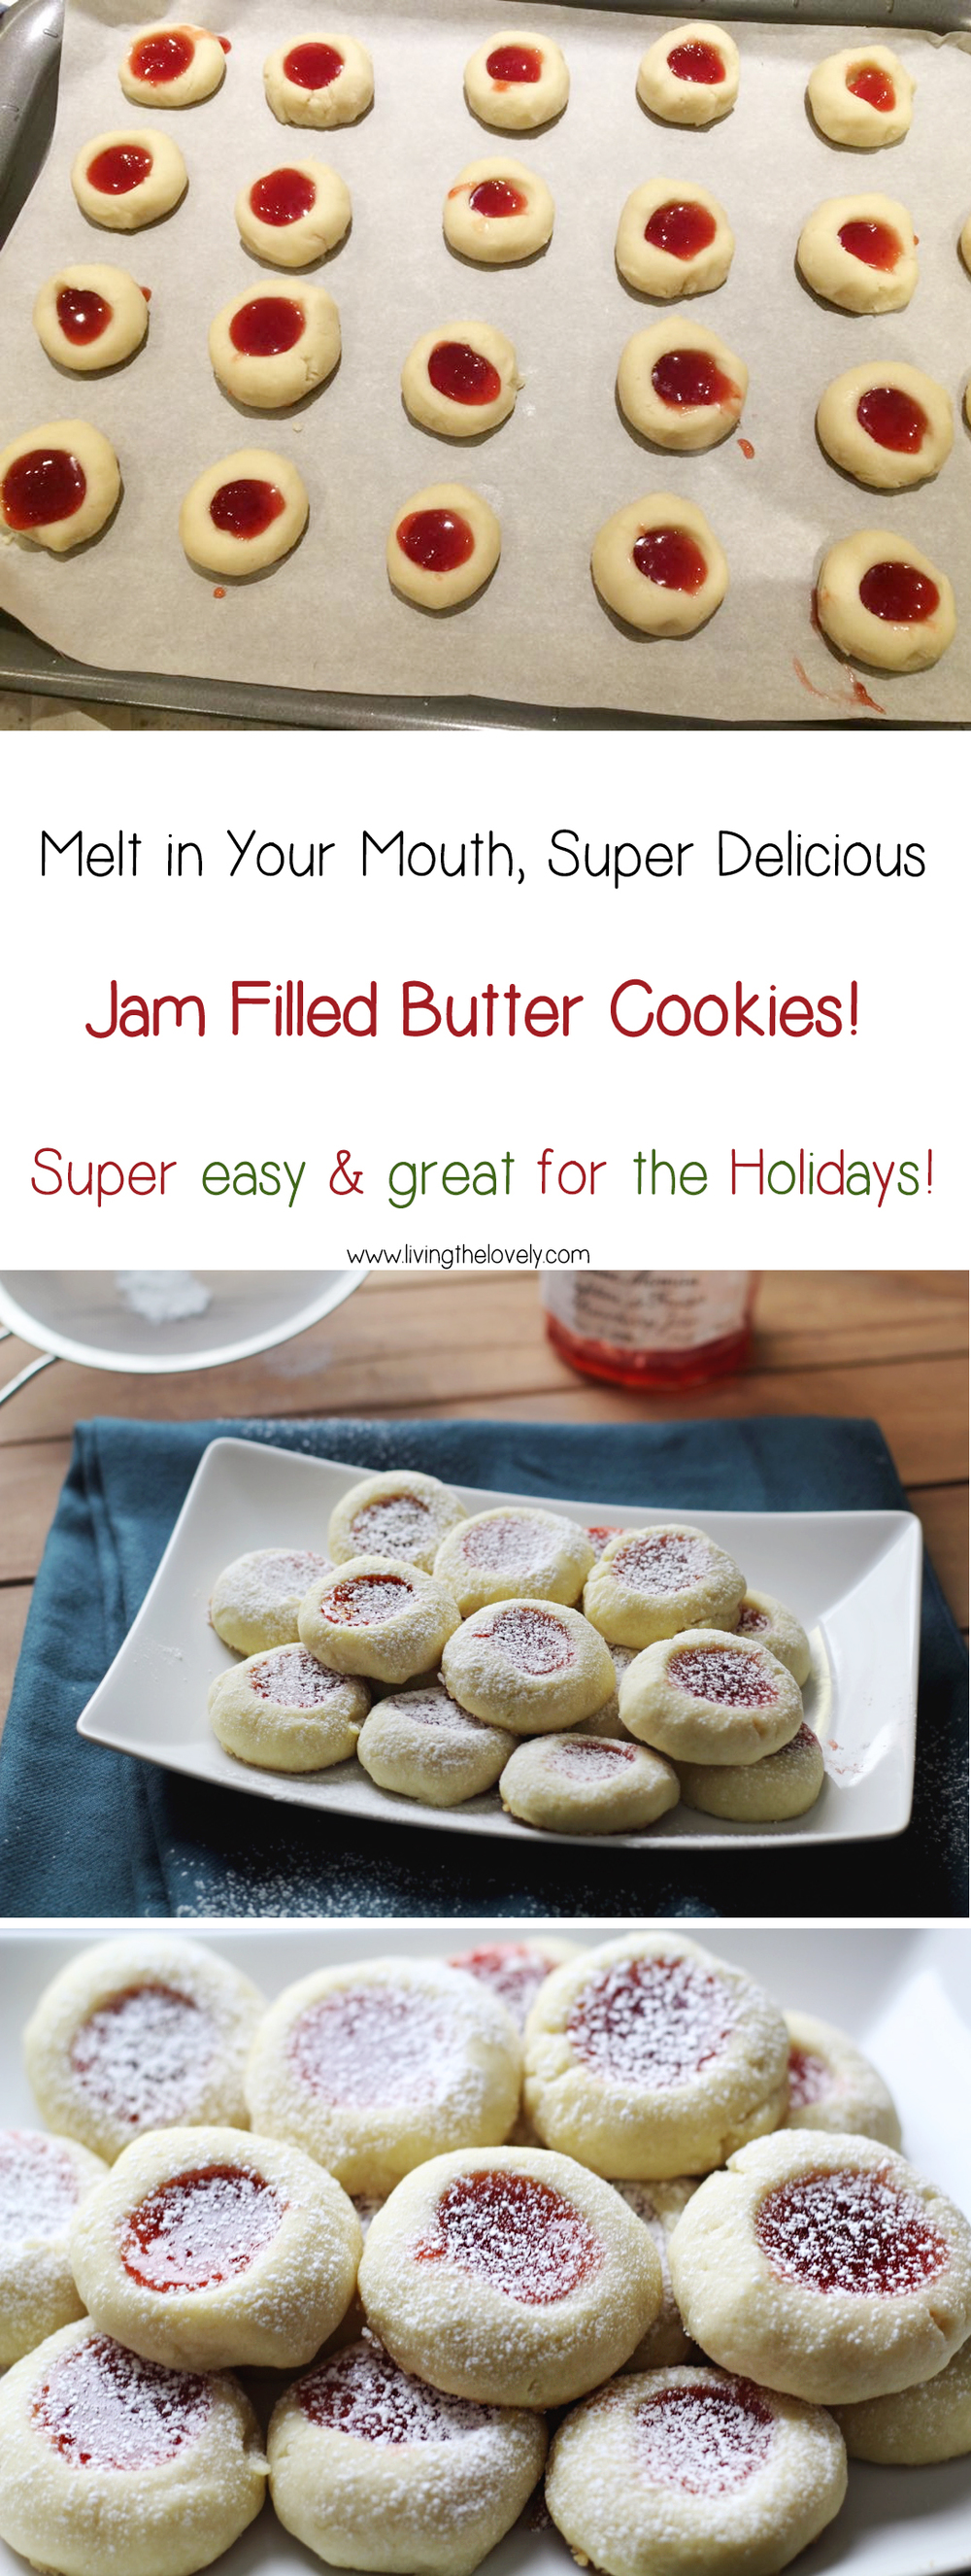 These cookies are seriously sooo quick and easy to throw together (only 5 ingredients!) and make the yummiest melt in your mouth butter cookies. These thumbprint cookies are a great addition to my Christmas cookie plate!